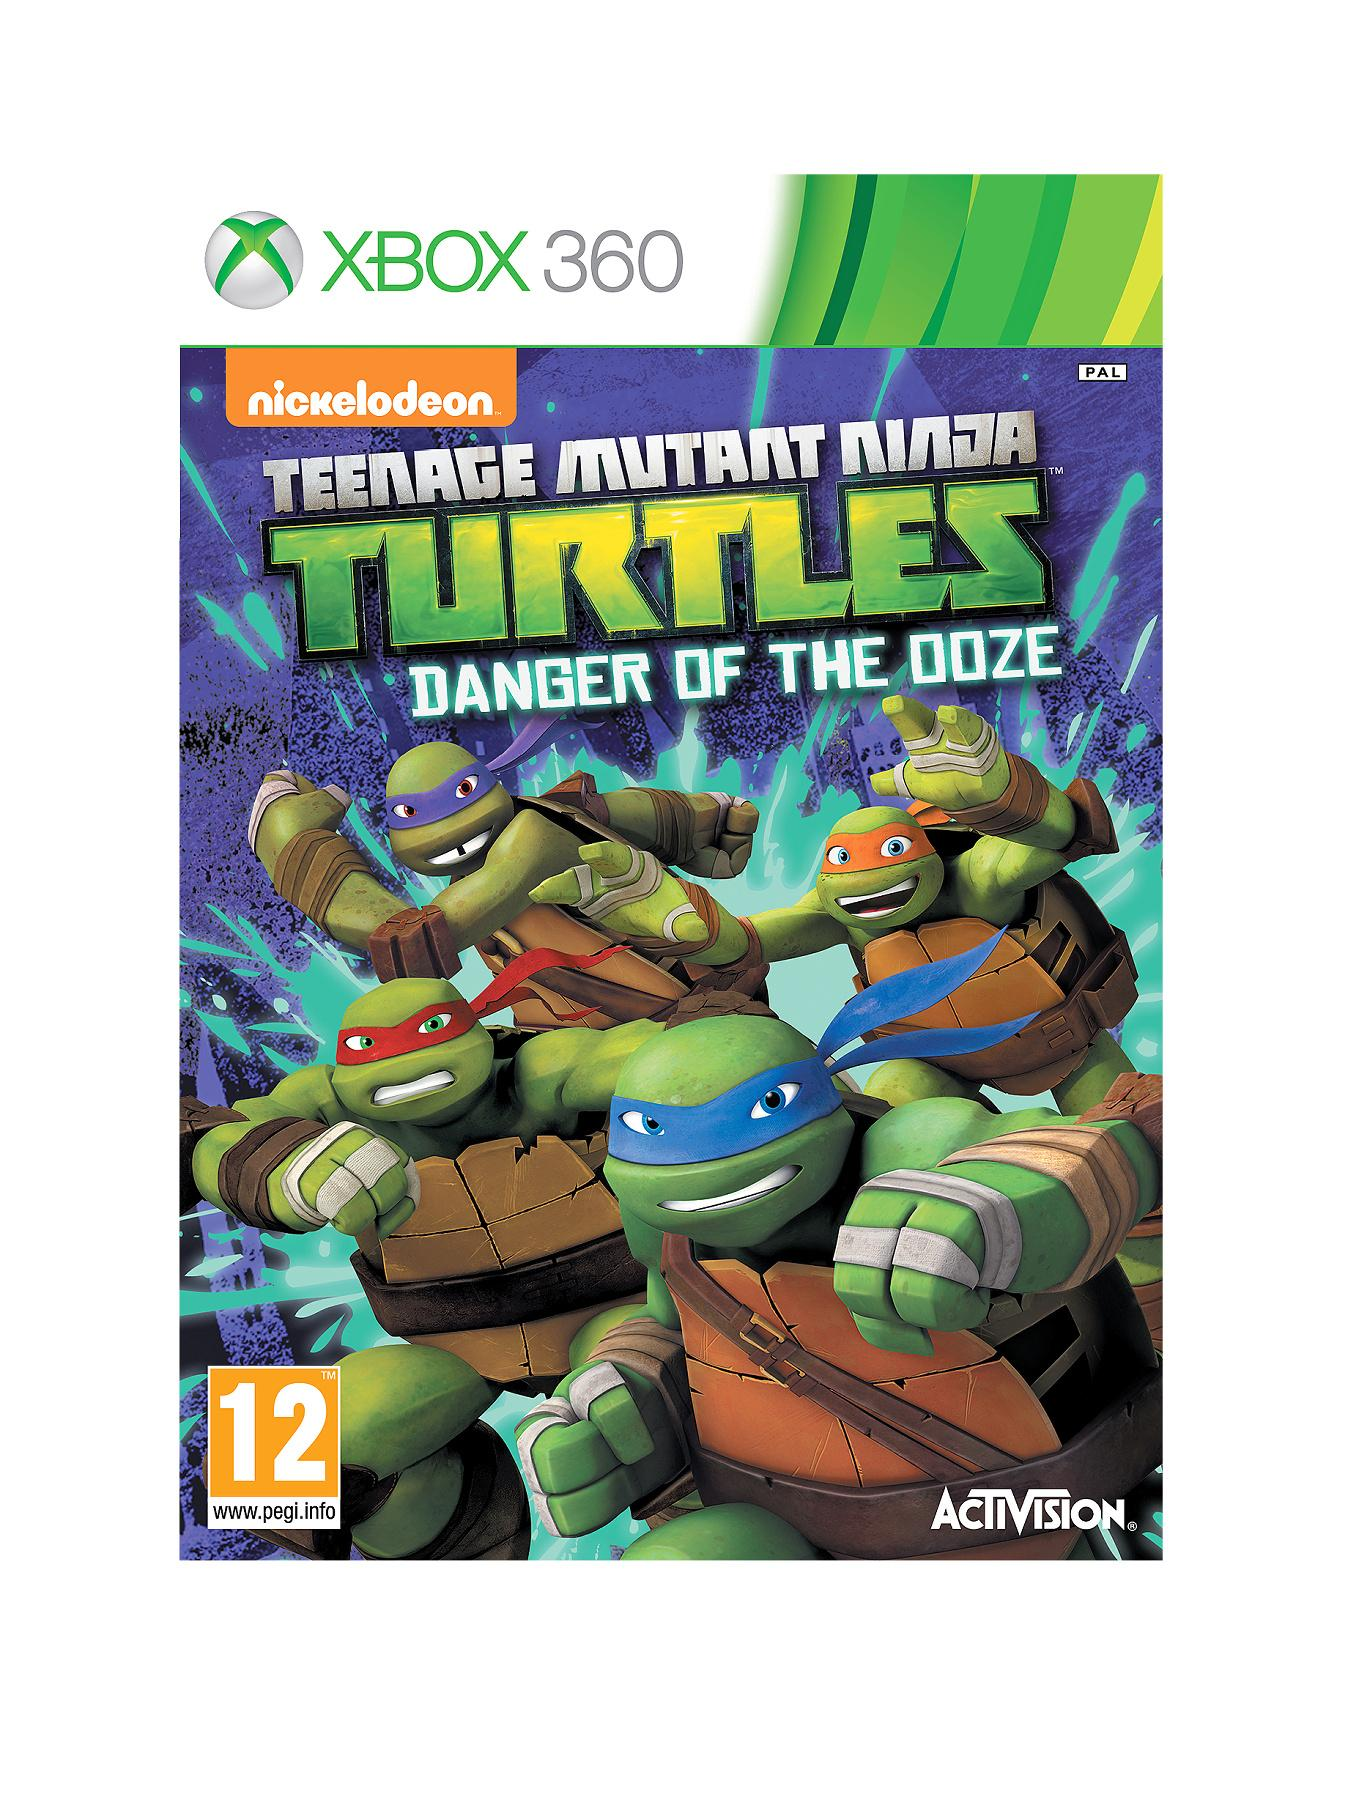 XBOX 360 Teenage Mutant Ninja Turtles: Danger of the Ooze